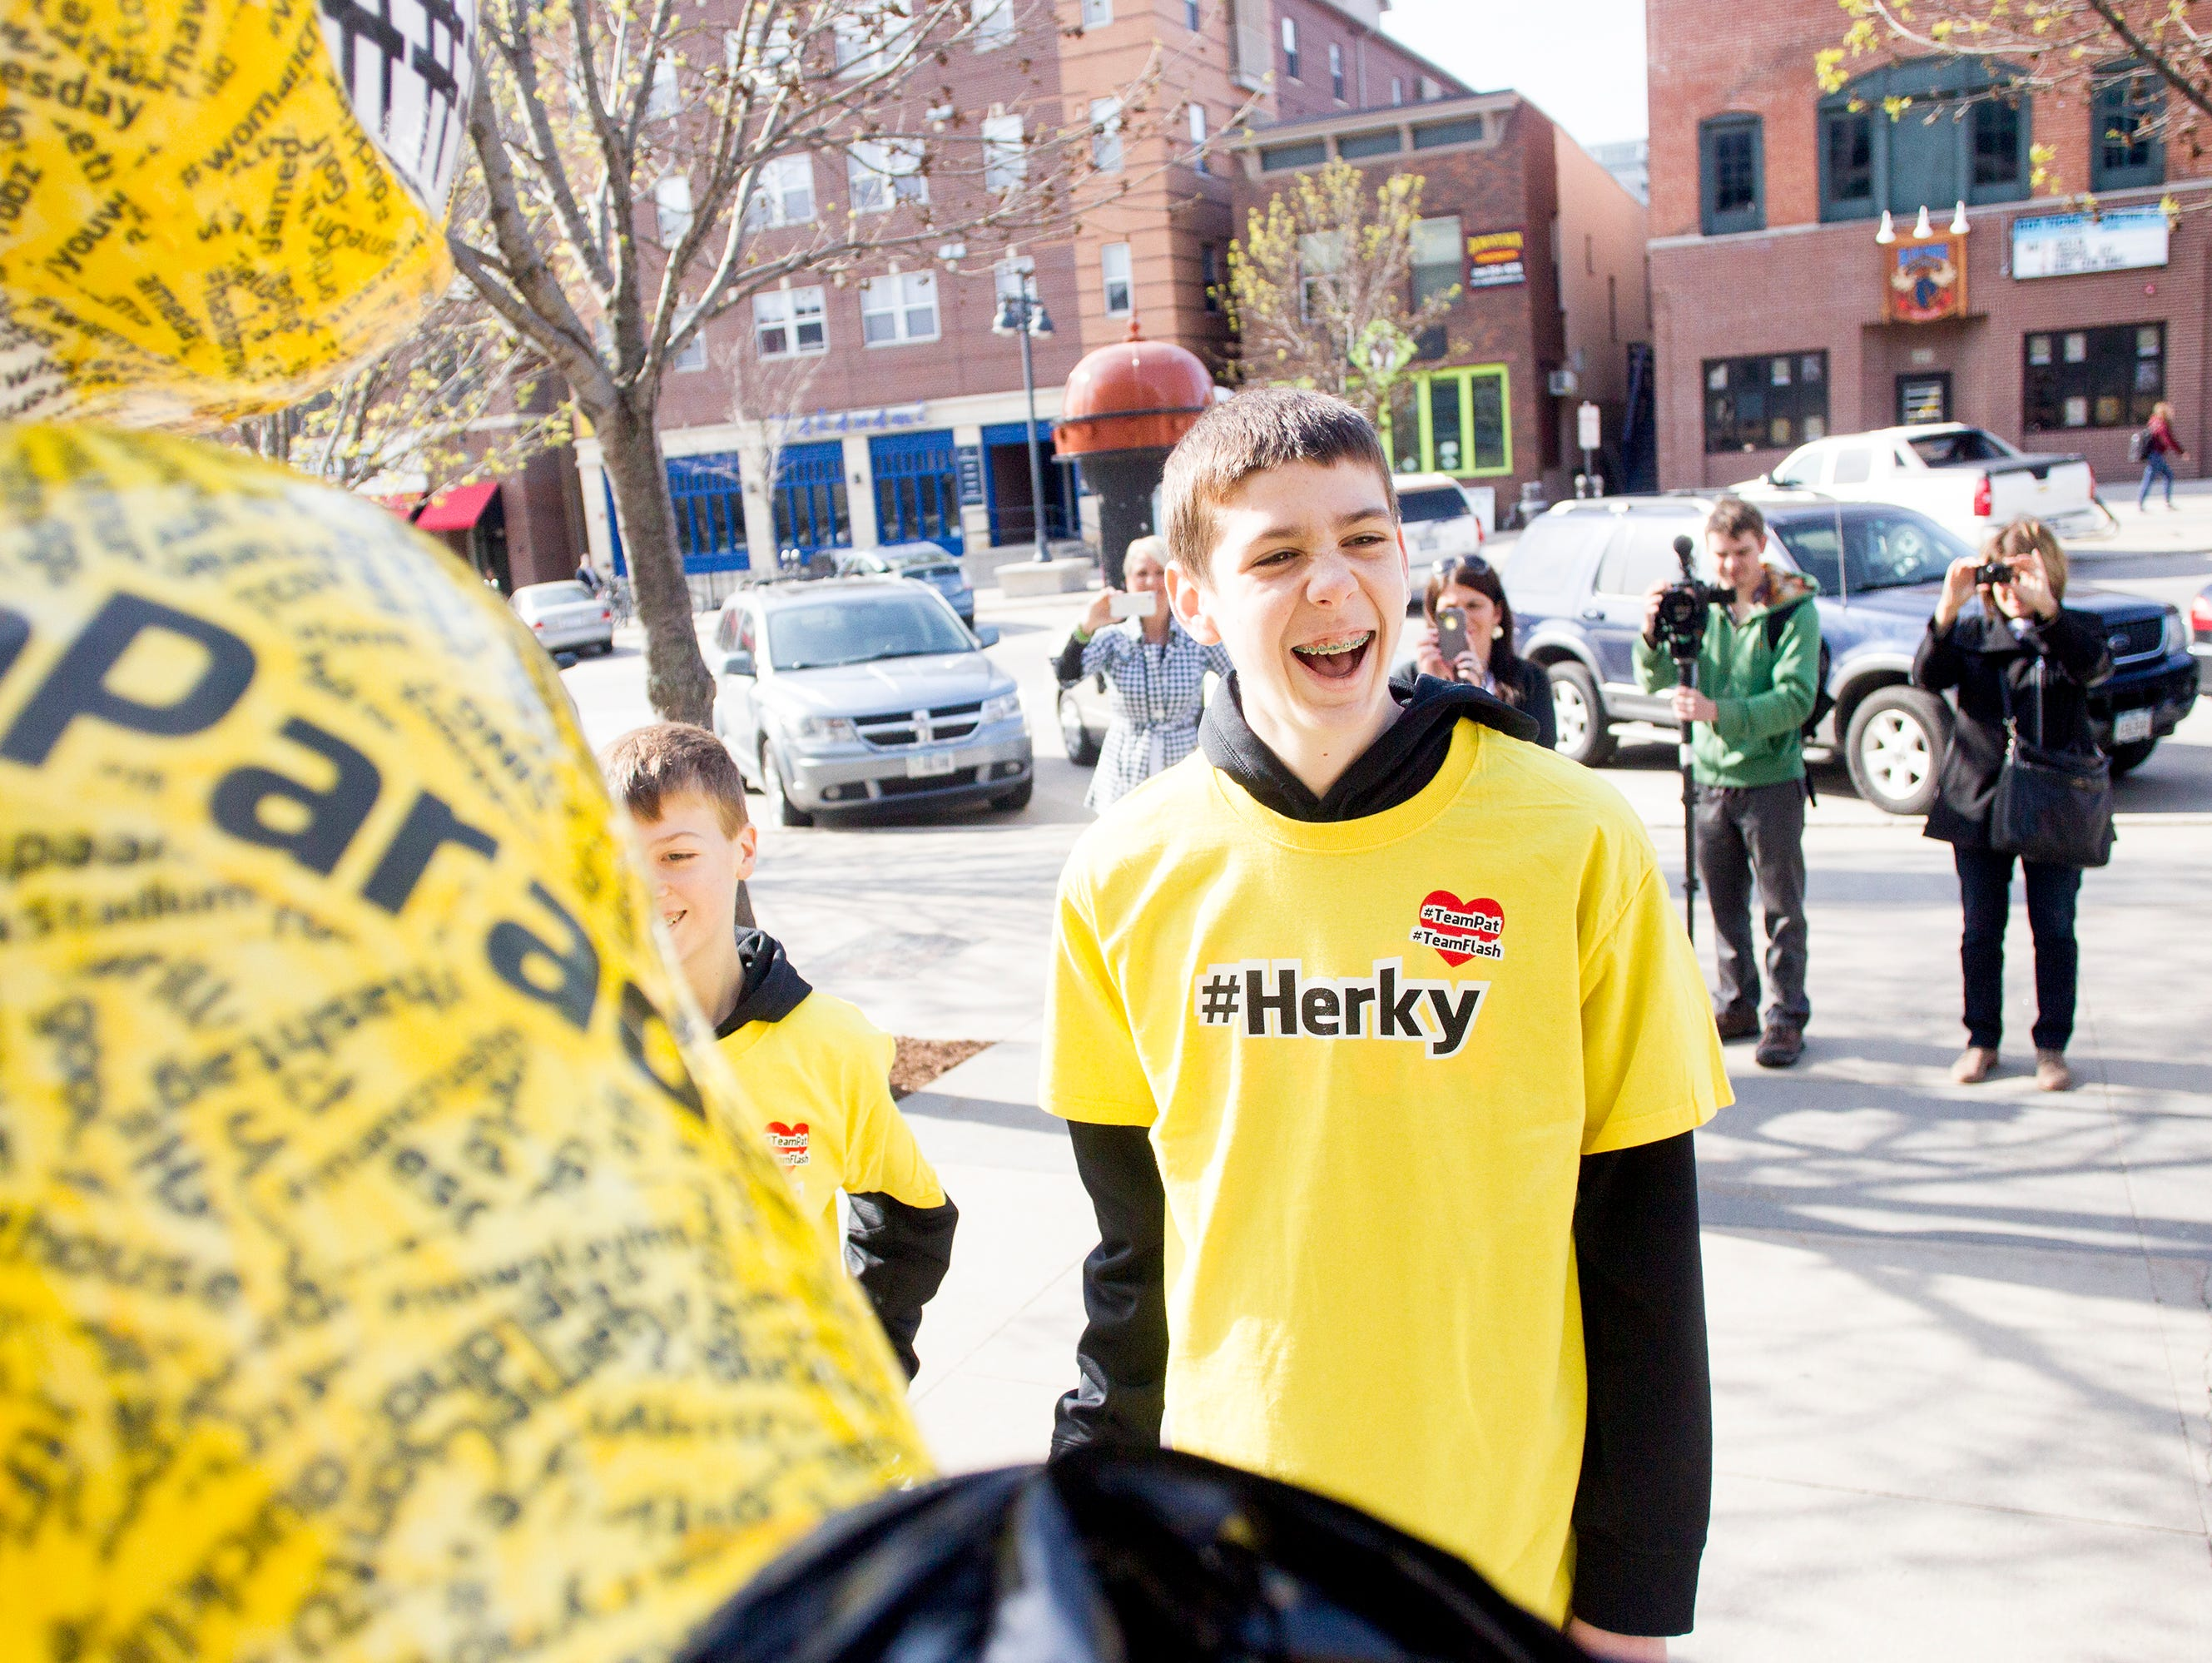 Patrick McCaffery, son of Iowa Men's Basketball Head Coach Fran McCaffery, smiles as he unveils the #Herky statue as part of the Herky on Parade series along Iowa Avenue in Iowa City, IA on Monday morning, May 5, 2014. Patrick, 14, had a tumor surgically removed from his thyroid in March 2014, which was shown to be cancerous. He was asked to unveil the #Herky statue after his own #TeamPat was recognized across the country including NBA star Chris Paul with the L.A. Clippers.